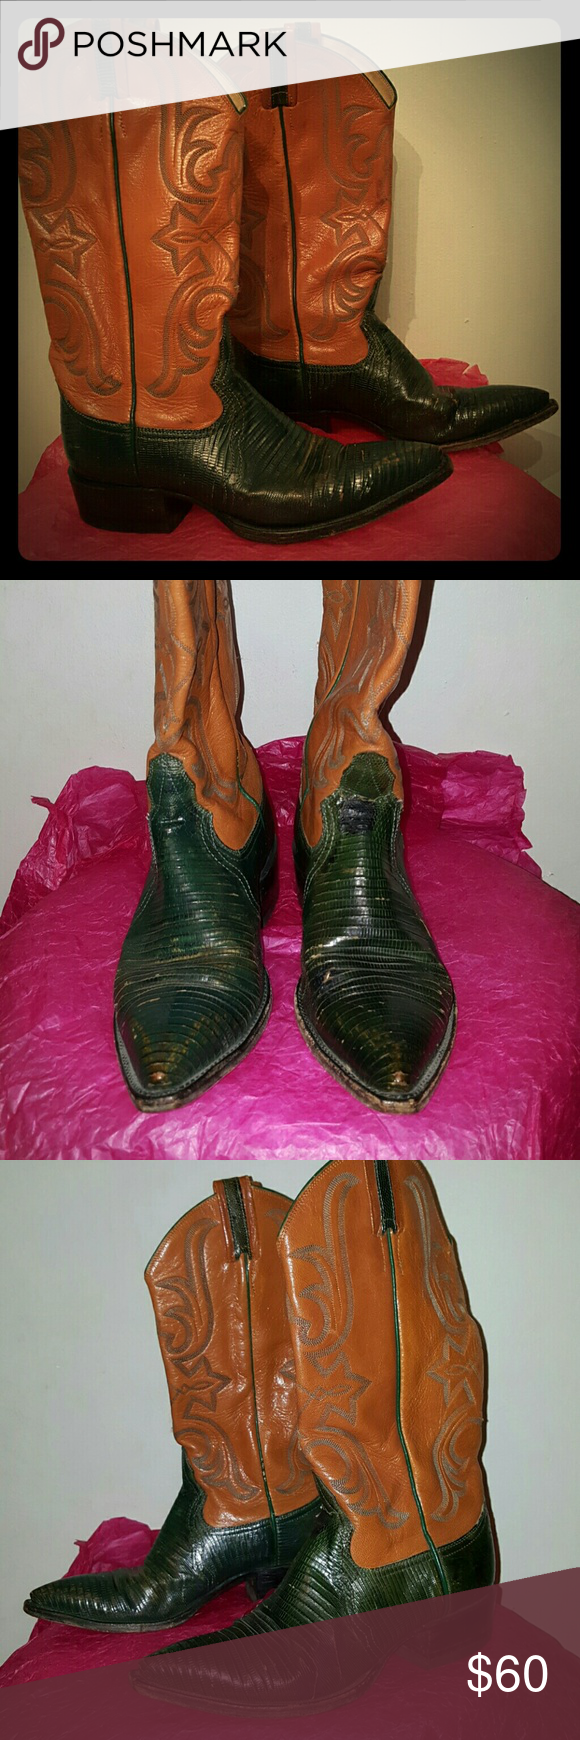 "Larry Mahan women's size 7 B western lizard boot Vintage pair! Beautiful combo of an earth palette. 1 1/2"" Cuban heel. Dark green lizard bottom, embroidered dark orange upper part. Lizard part is partially discolored and there are couple of cuts due to vintage nature of this pair. Size marked 270, 2 for B, 7 for size, 0 for a full size. LOL means ladies. Handcrafted in El Paso. If you need more pics, let me know. Larry Mahan Shoes Heeled Boots"